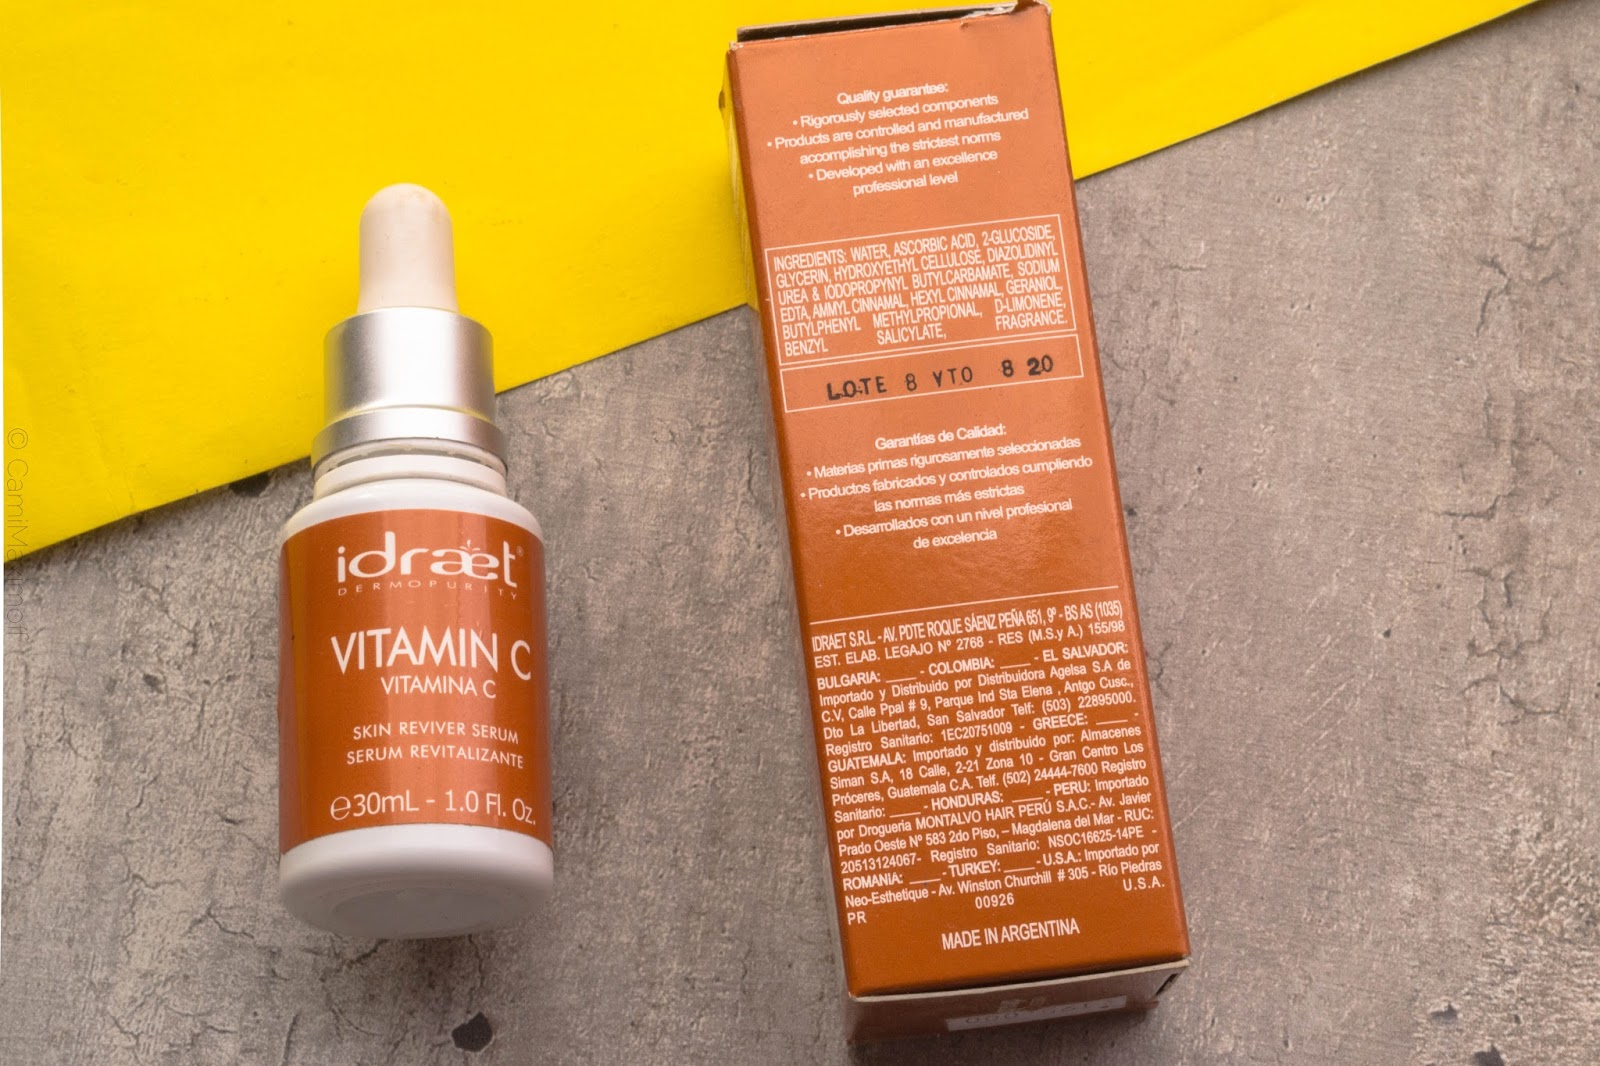 vitamina c idraet serum noche opinion